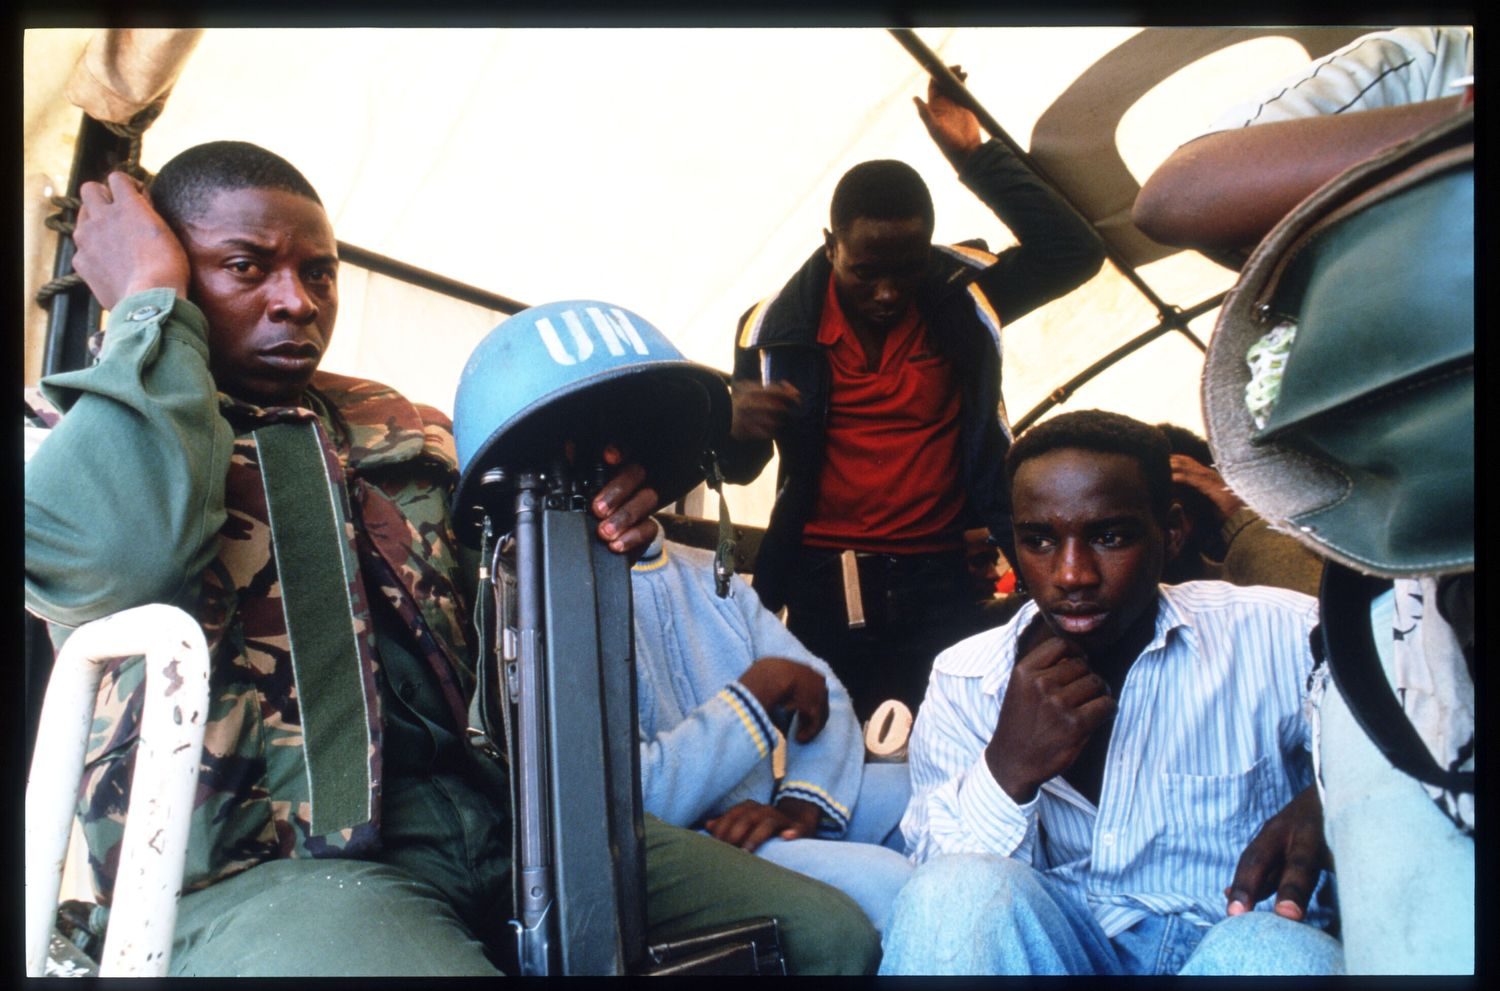 218317 41: A United Nations peacekeeper poses May 25, 1994 in Rwanda. Following the assassination of President Juvenal Habyarimana in April, 1994 genocide of unprecedented swiftness left up to one million Tutsis and moderate Hutus dead at the hands of organized bands of militia by early July, 1994. (Photo by Scott Peterson/Liaison)